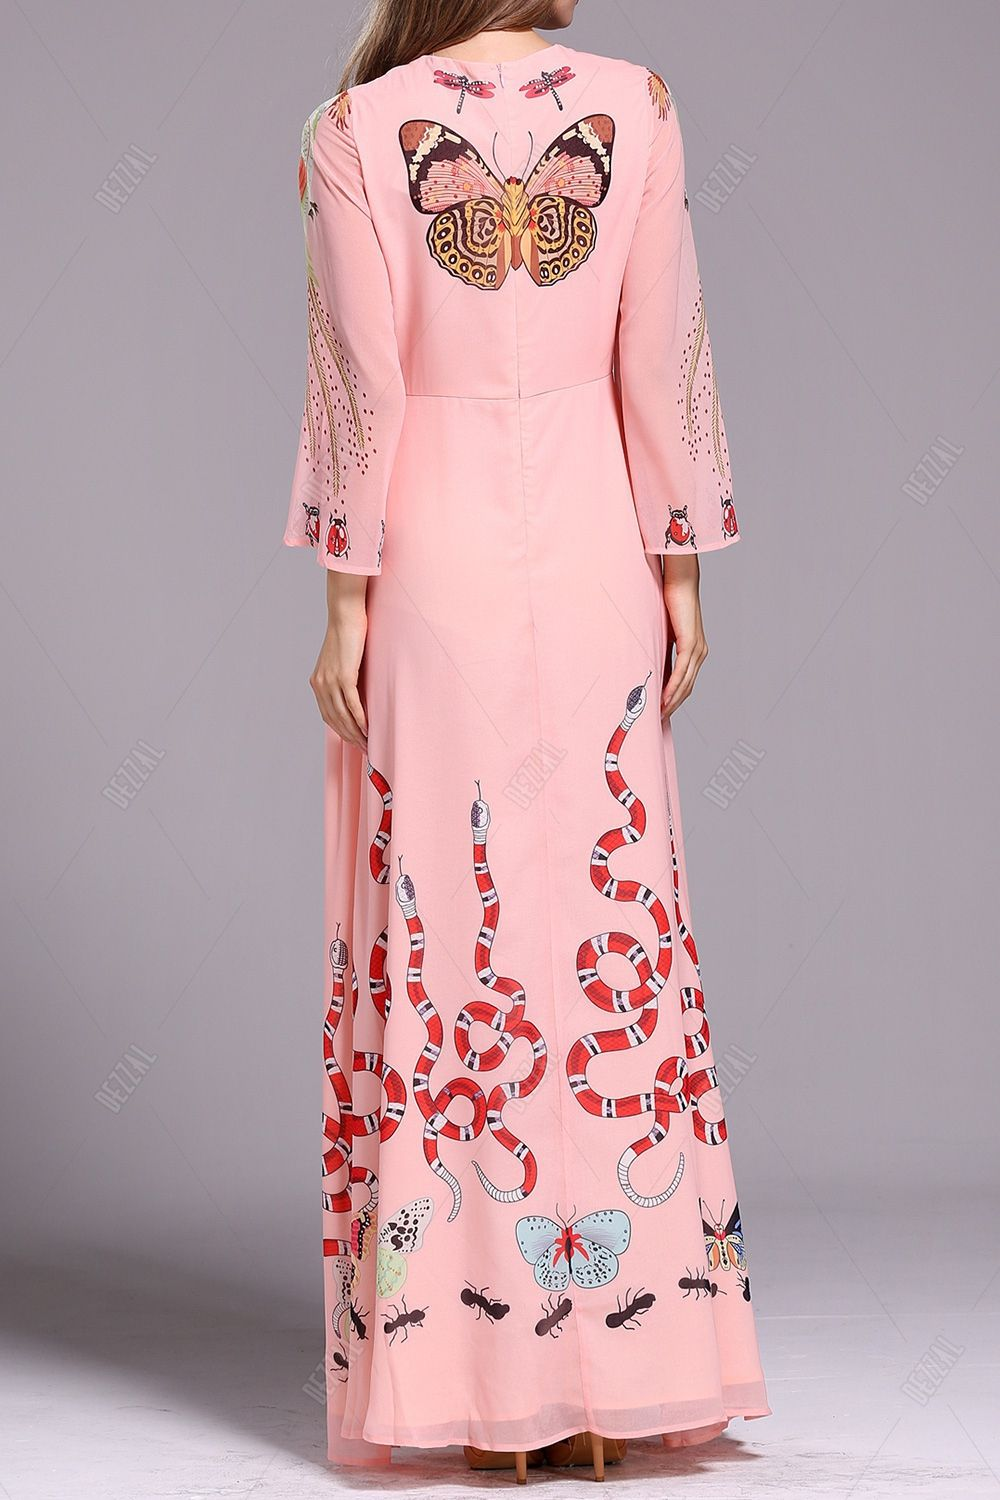 Bell sleeve evening dress pretty me pink for breast cancer